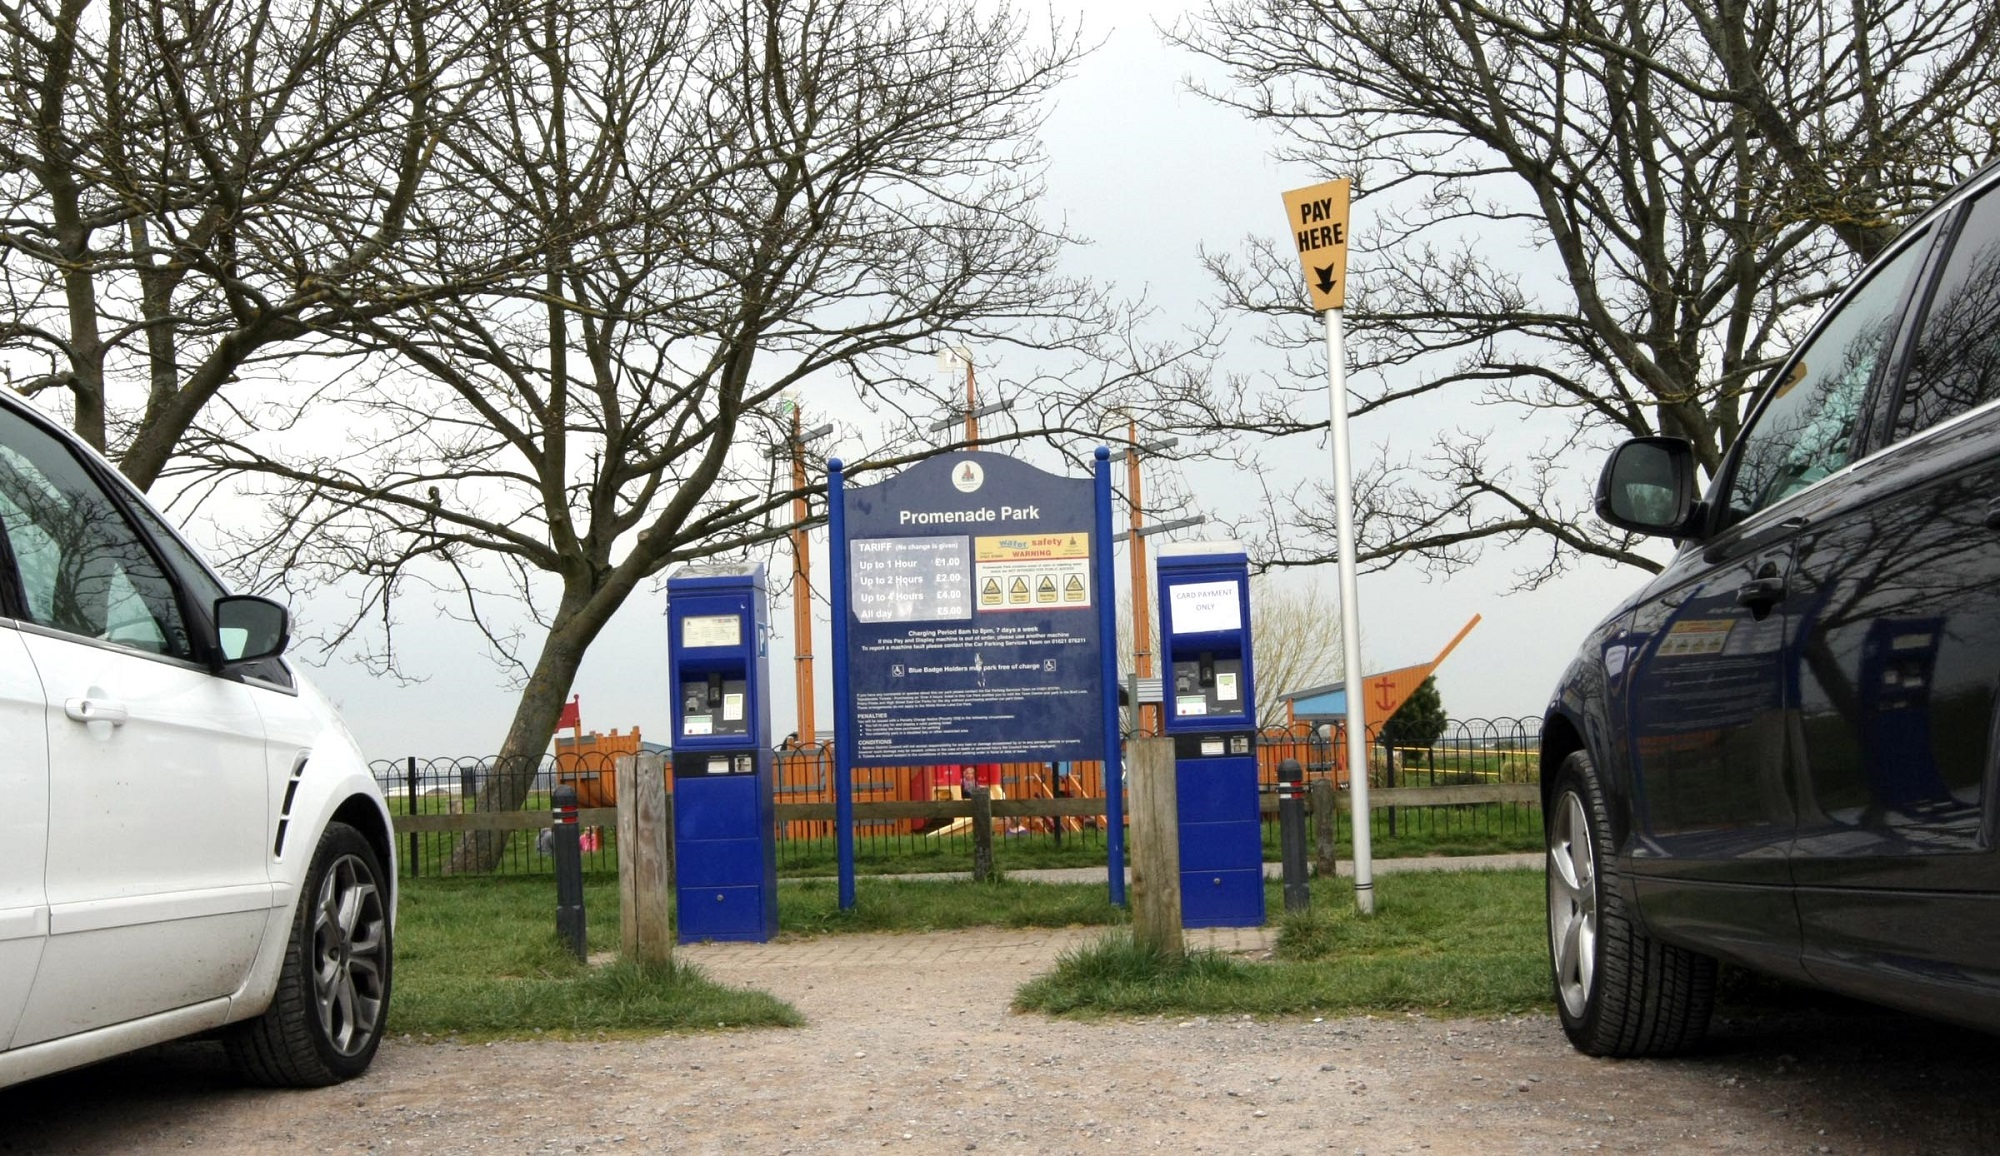 Promenade Park car park ticket machines have been targeted